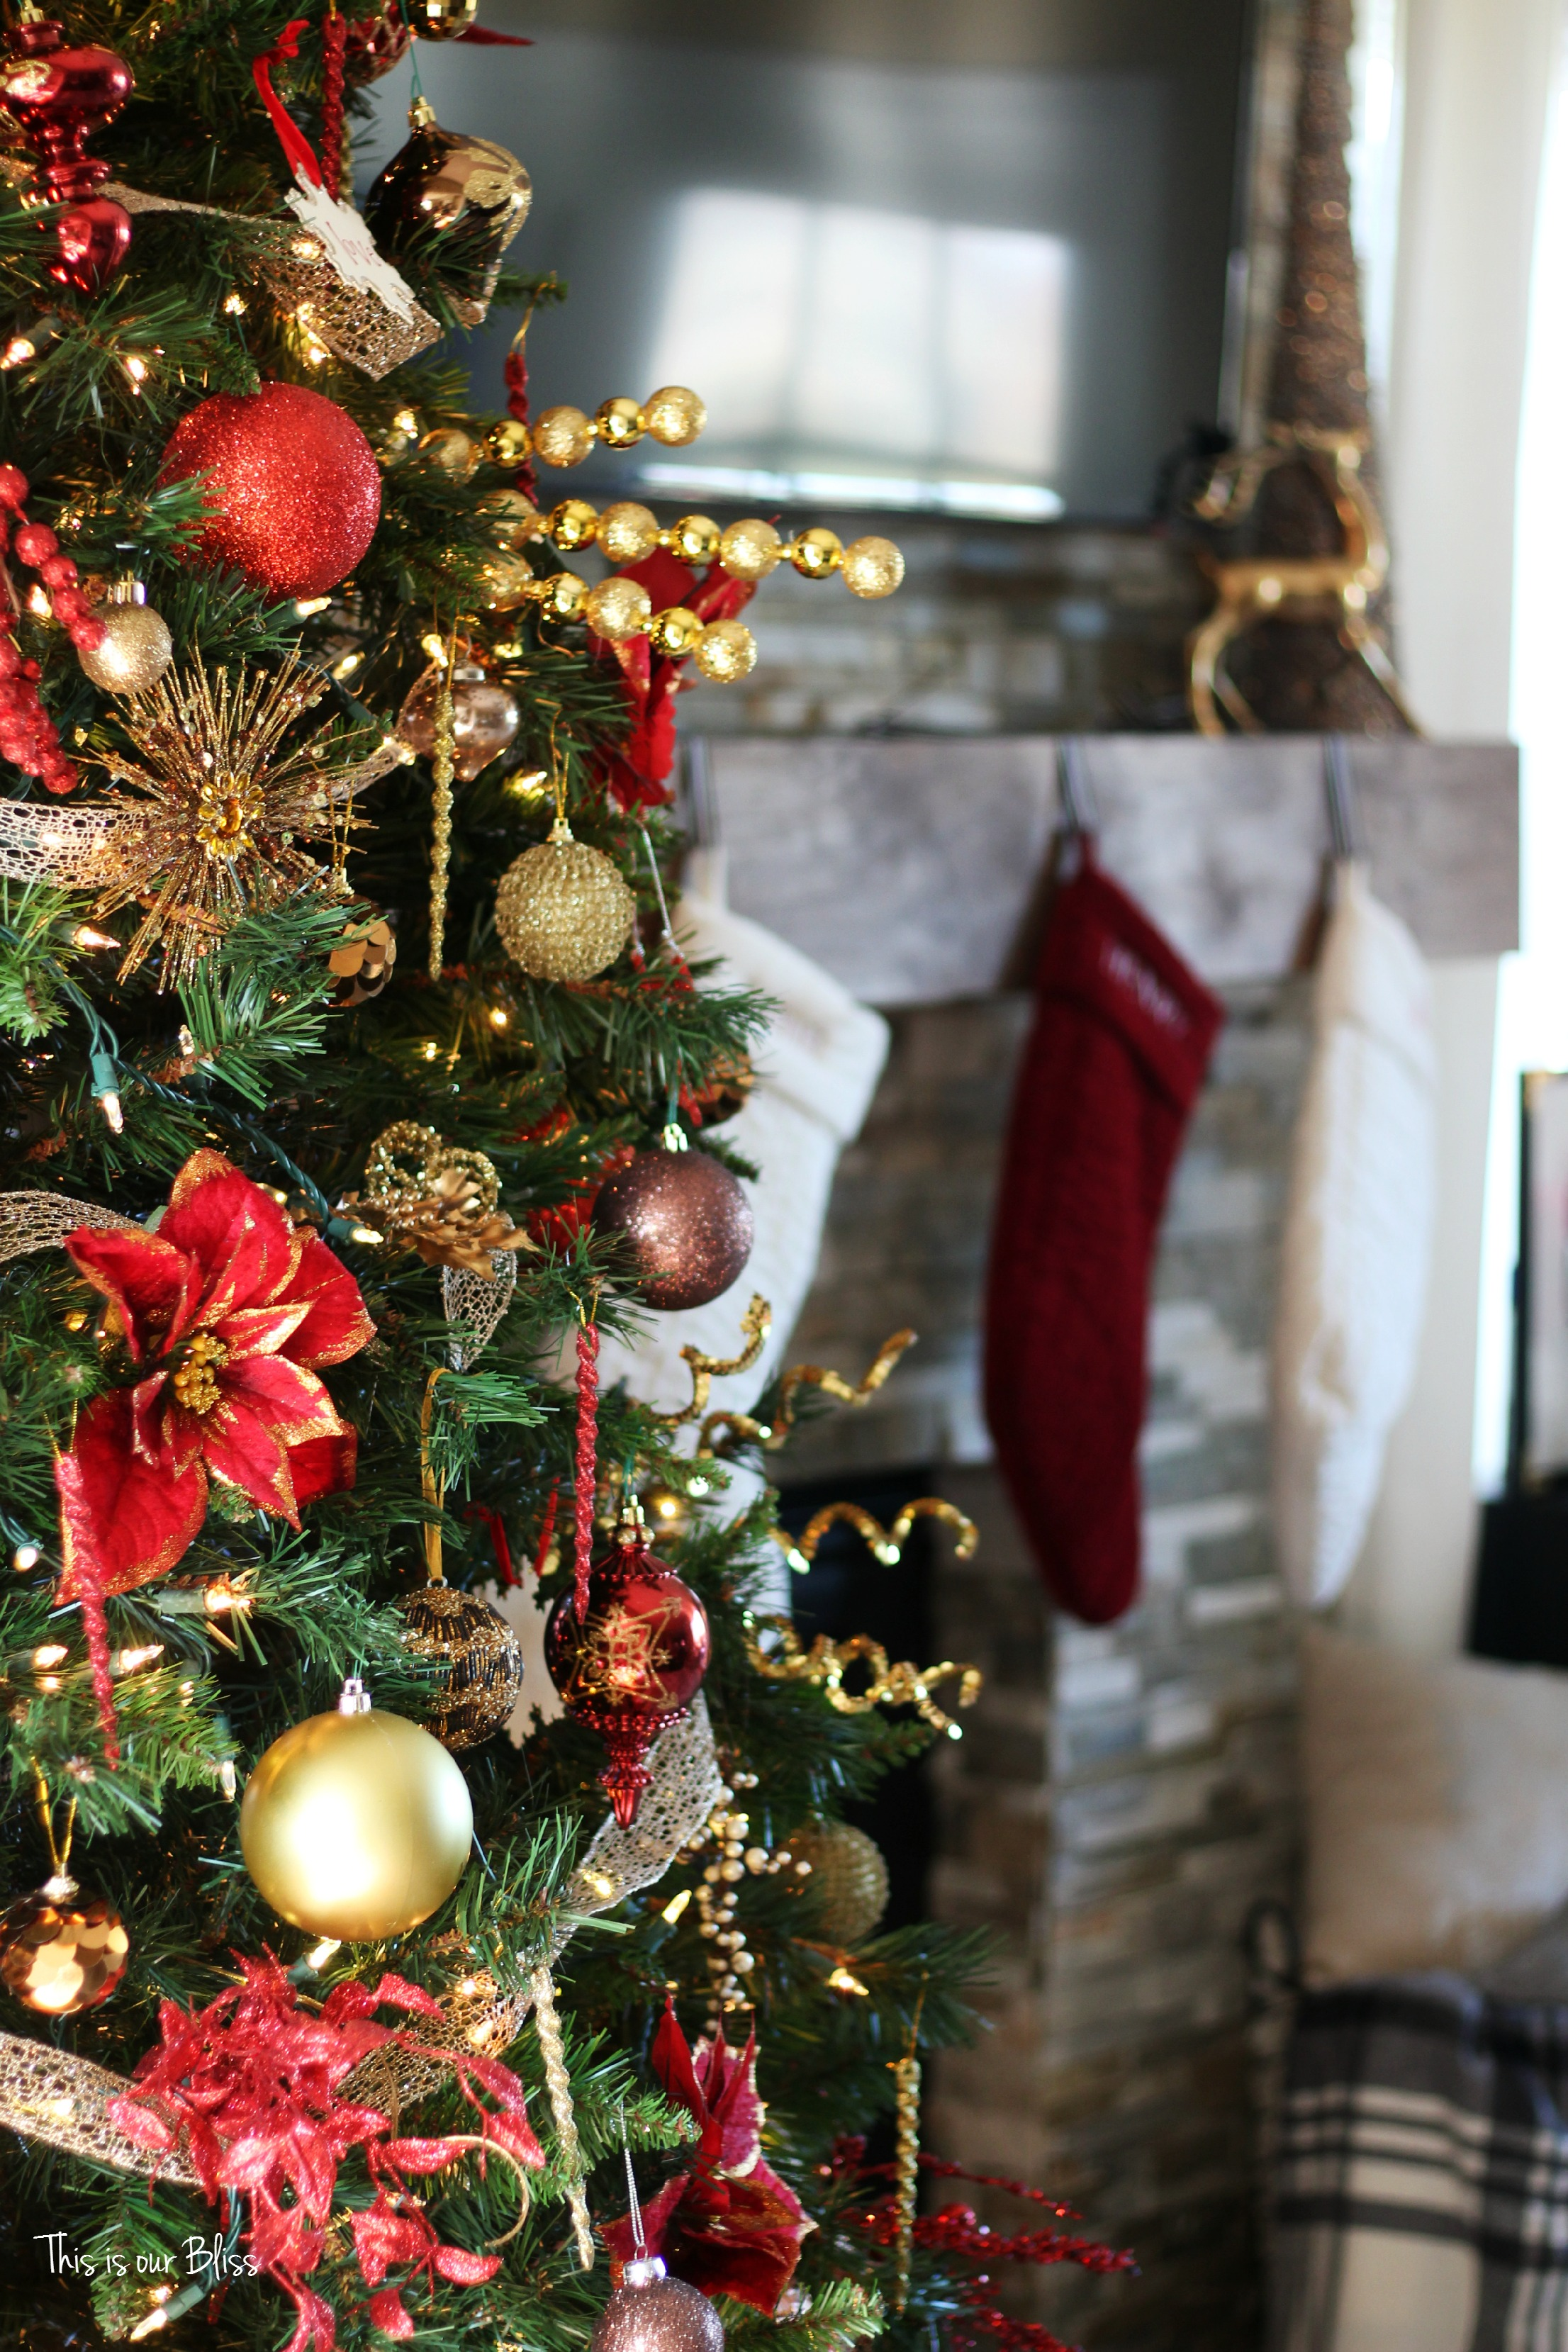 Uncategorized christmas decorations amp holiday decorations - Speaking Of The Tree Here It Is I Added Several Of The Same Gold Sequin Picks From The Formal Living Room Tree Lots Of Red And Gold Ornaments Of All